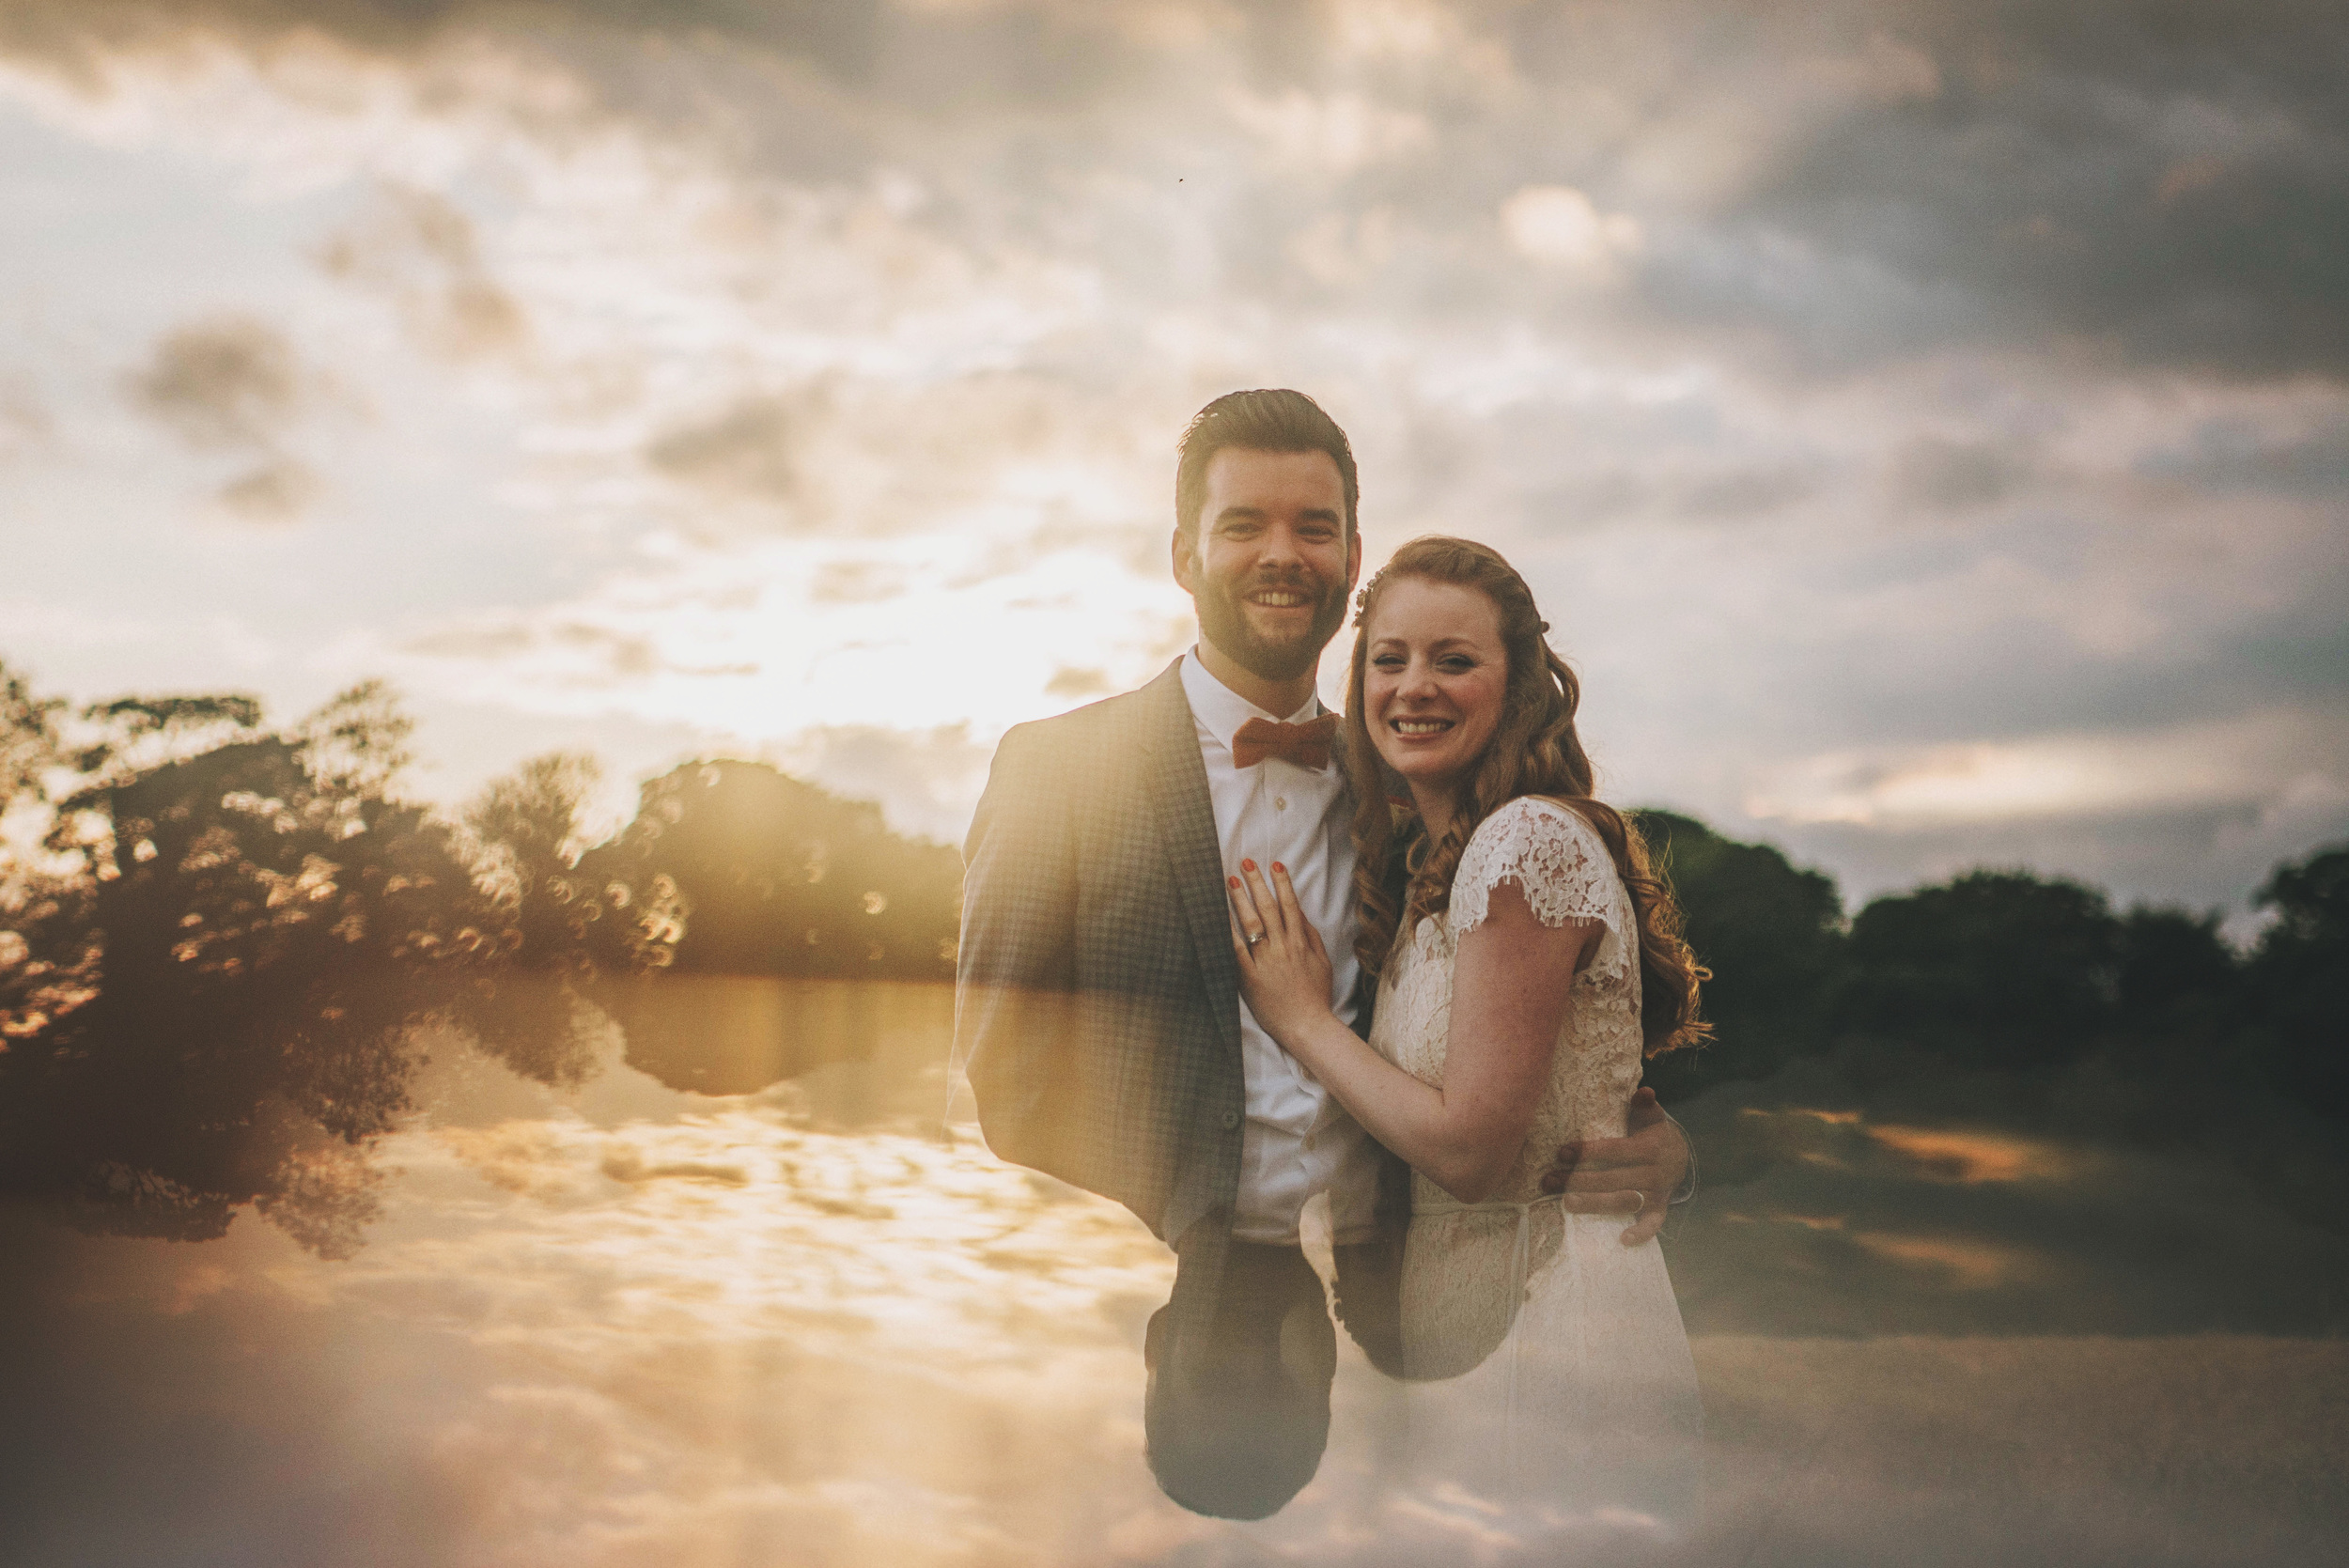 Bride Groom Bow tie Braces Cliff Barns Norfolk sunset Essex UK Documentary Wedding Photographer